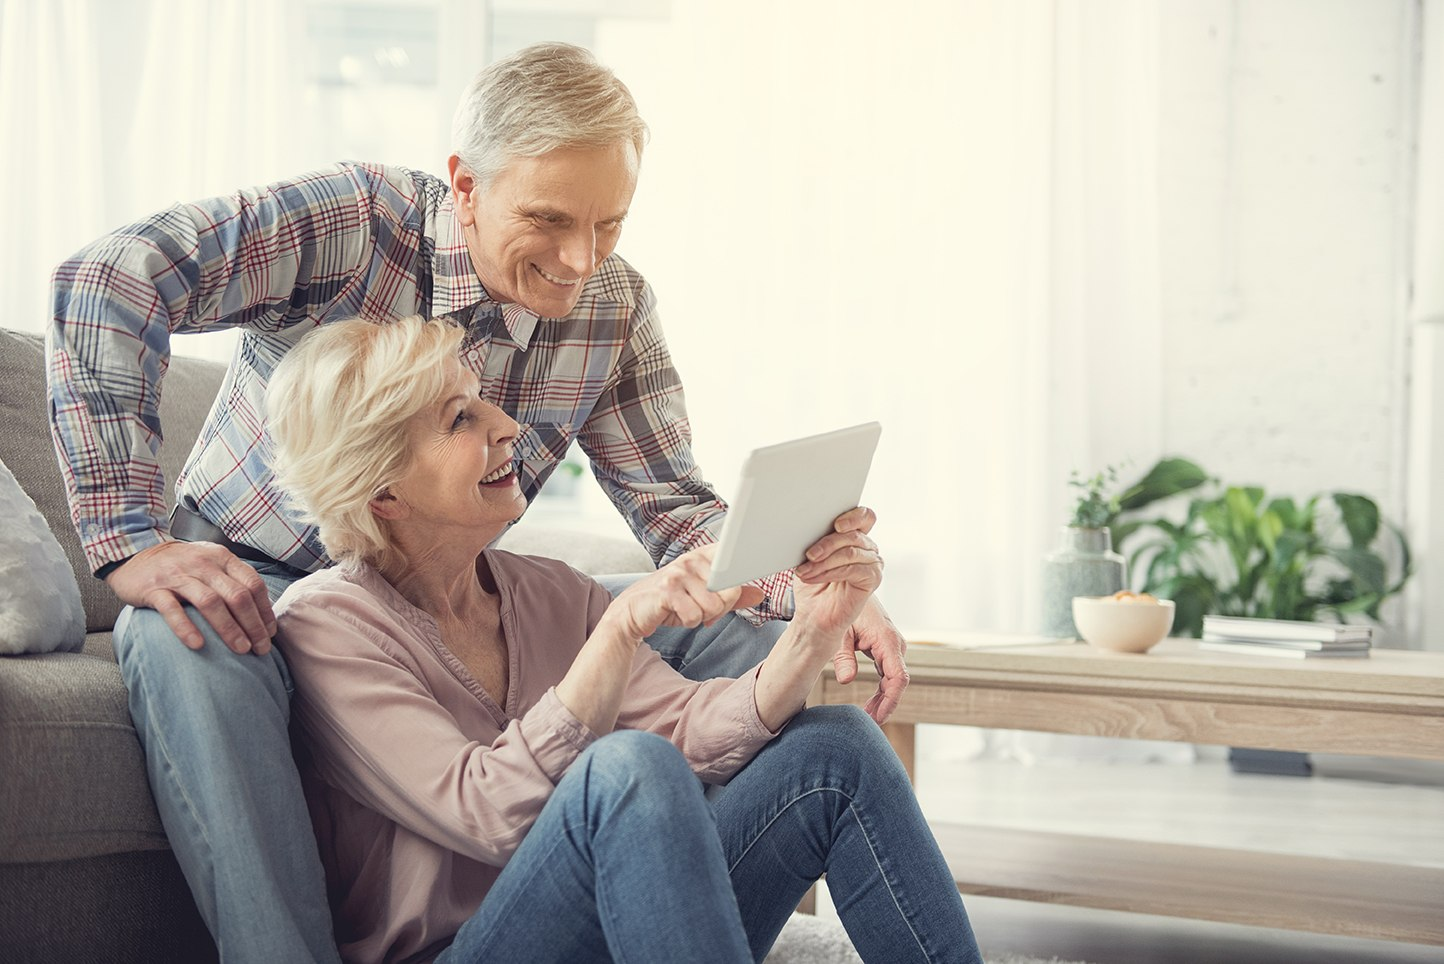 Elderly couple looking at a tablet smiling